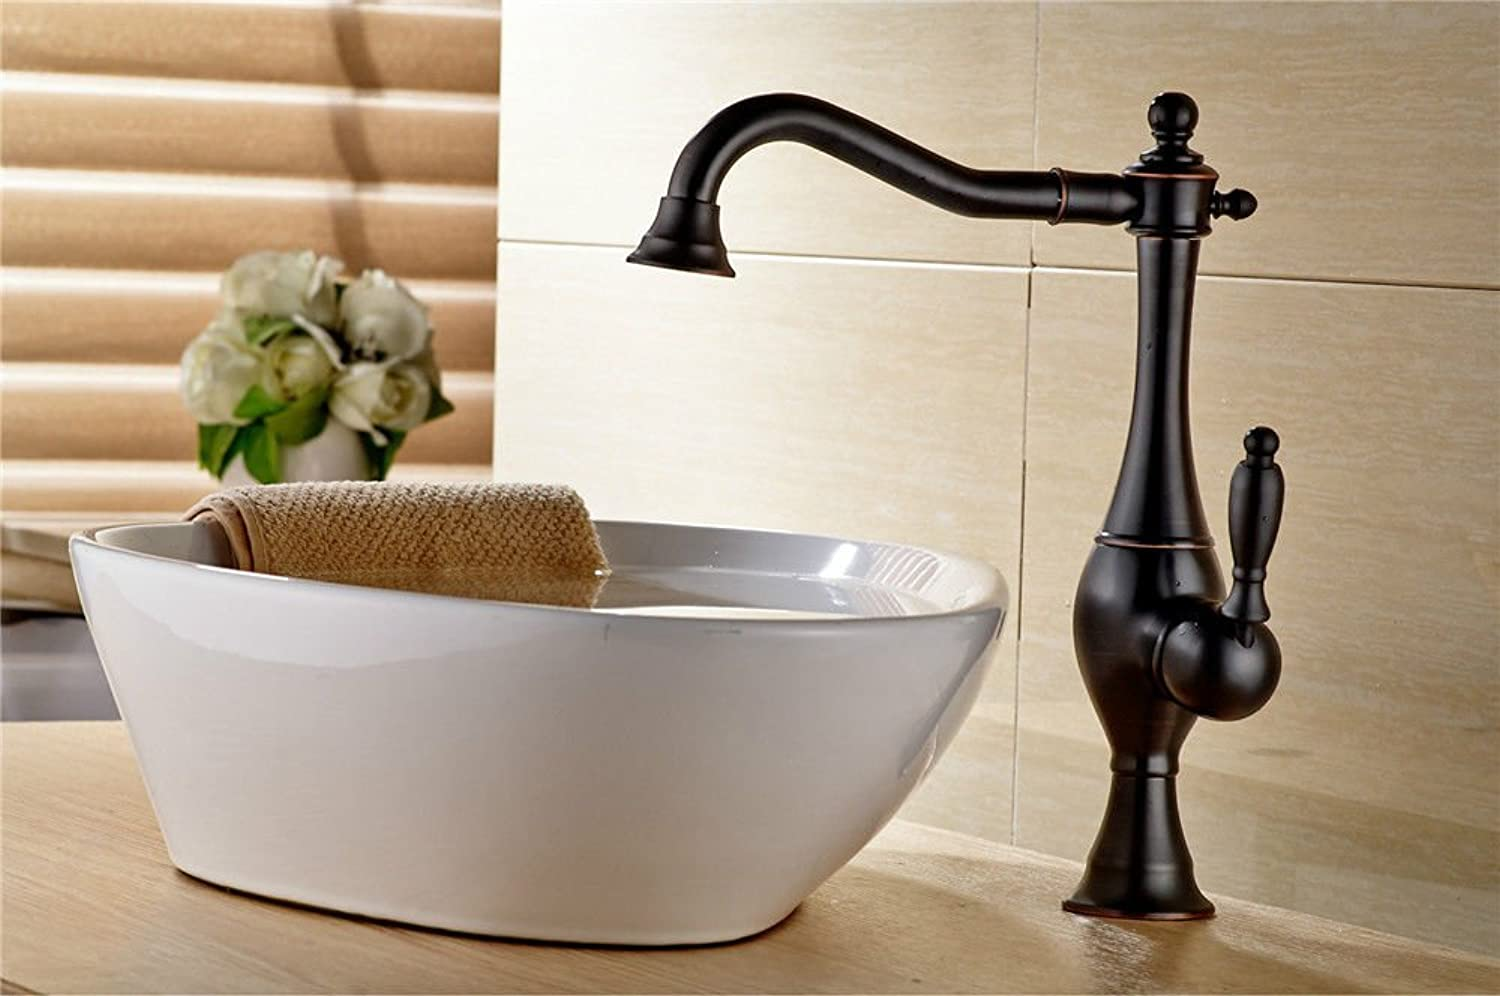 Gyps Faucet Basin Mixer Tap Waterfall Faucet Antique Bathroom Mixer Bar Mixer Shower Set Tap antique bathroom faucet Tap the black ancient washing dishes in a bathtub faucet kitchen sink single hole c